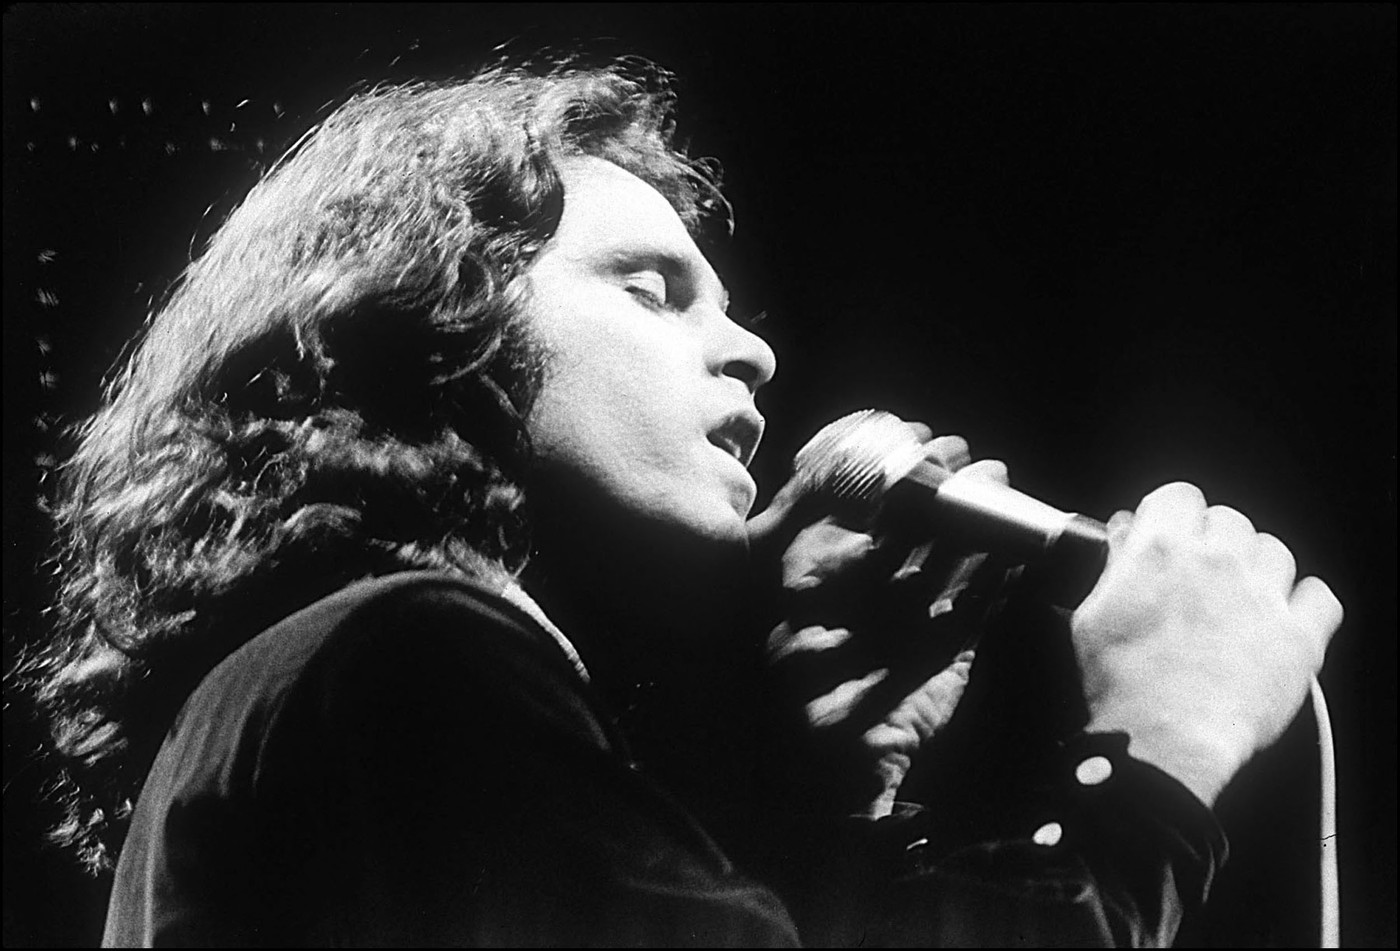 Free Download Jim Morrison Wallpapers The Doors Wallpapers Jim